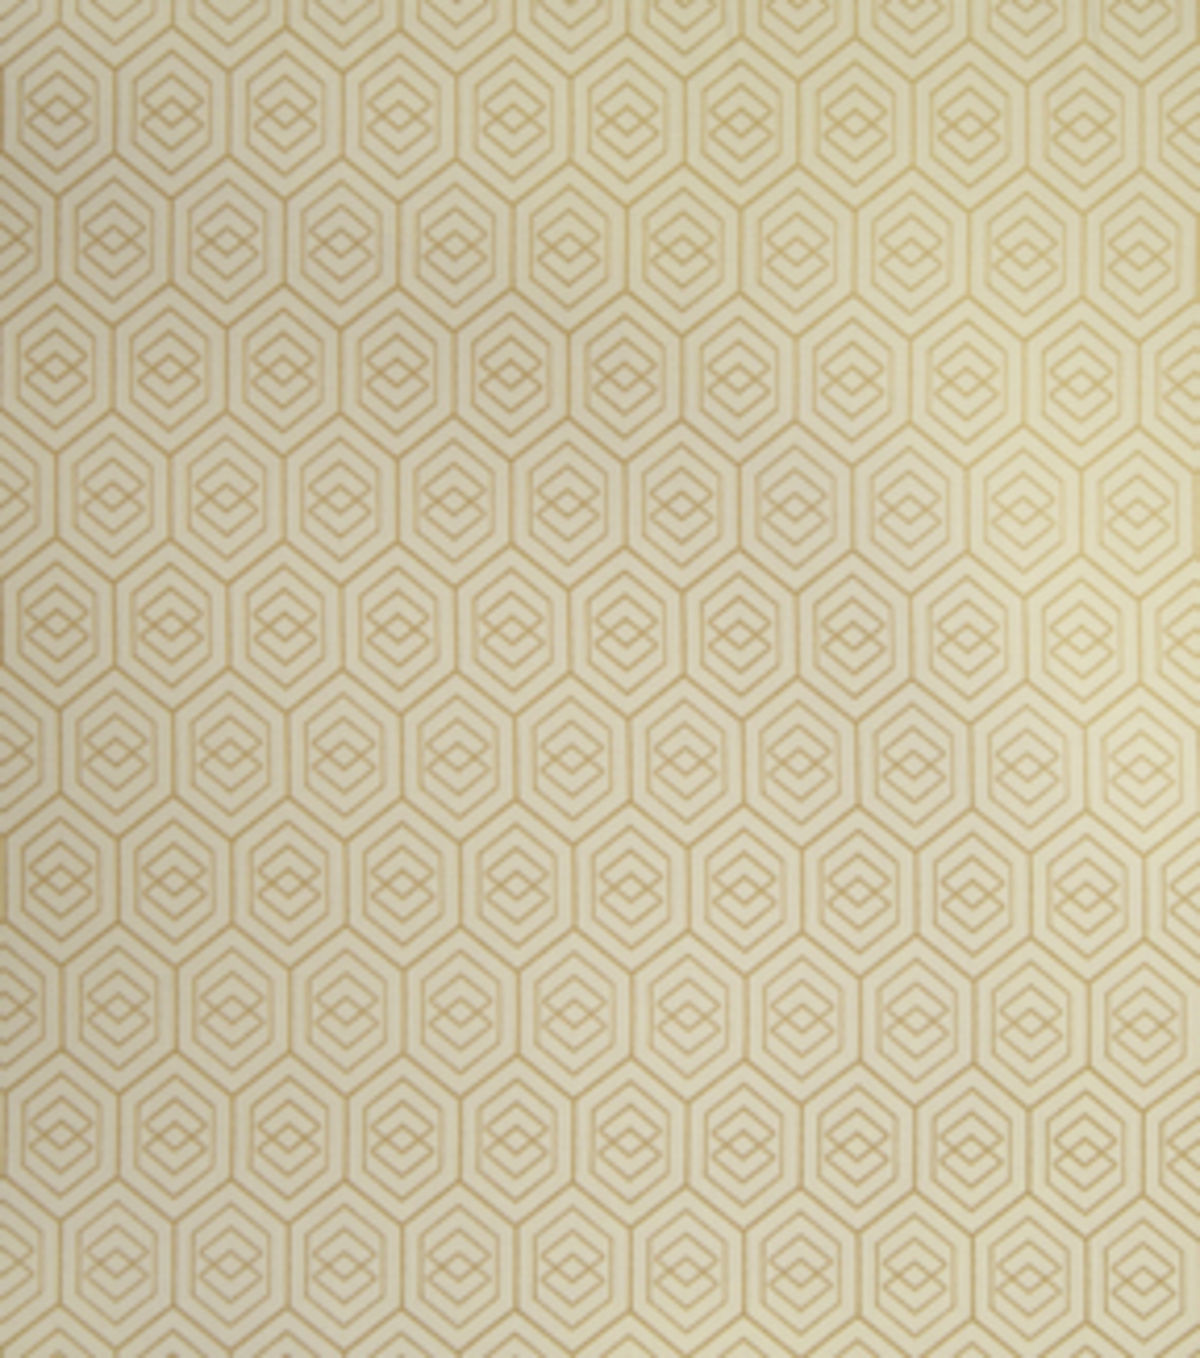 Home Decor 8\u0022x8\u0022 Fabric Swatch-Eaton Square Fleming Sand